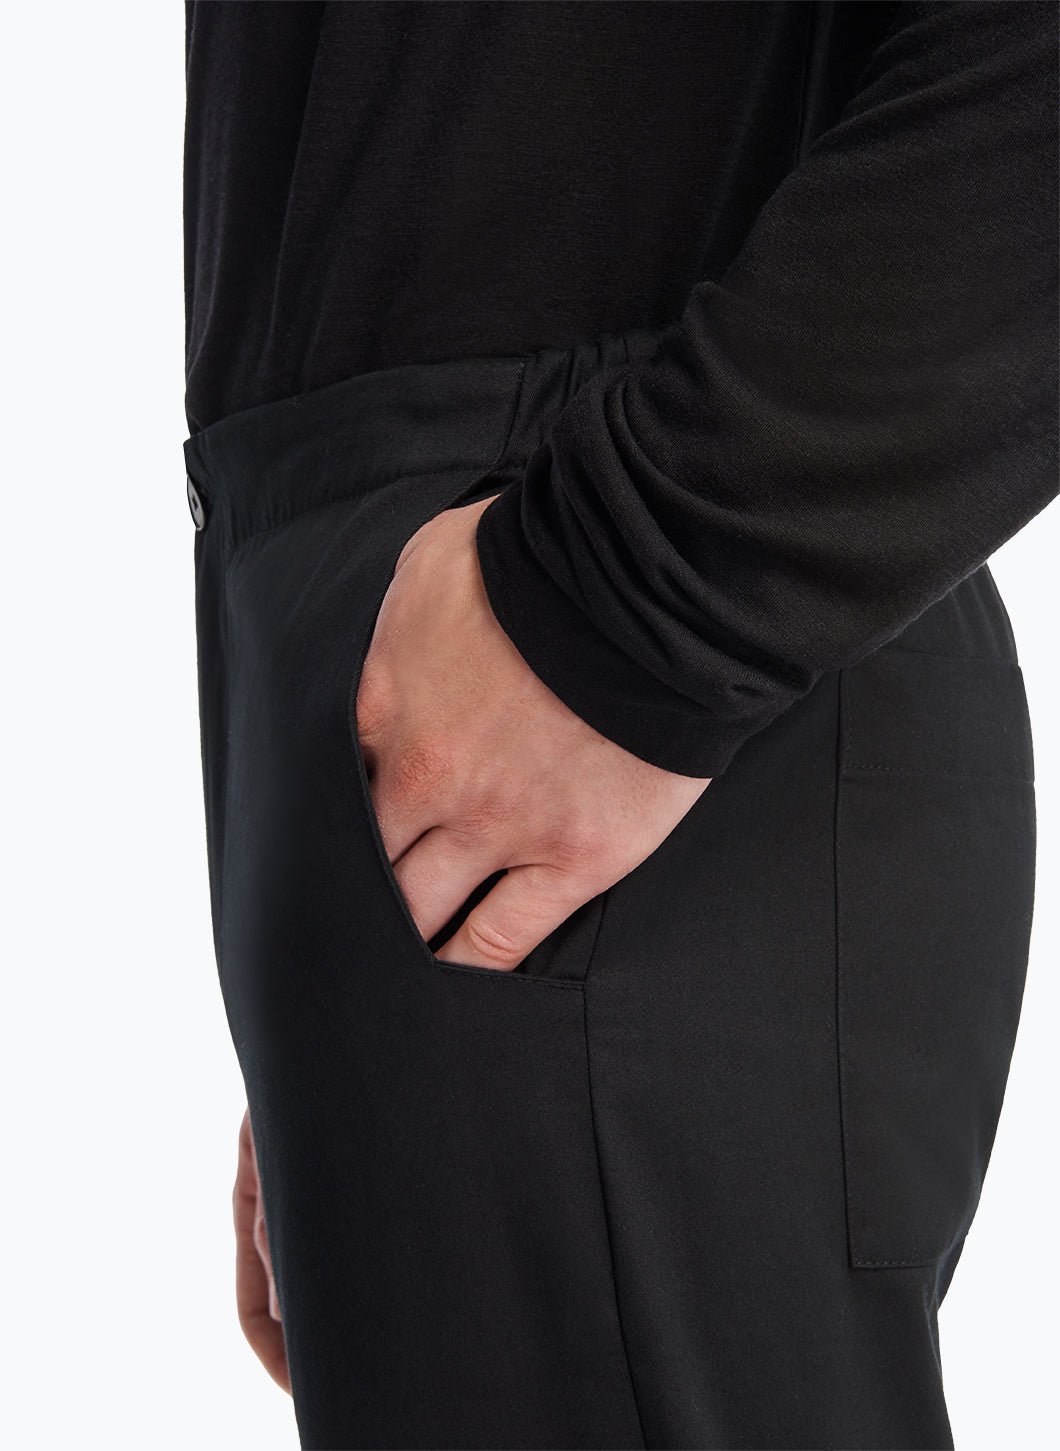 Pants with Notched Pockets in Black Cotton Gabardine